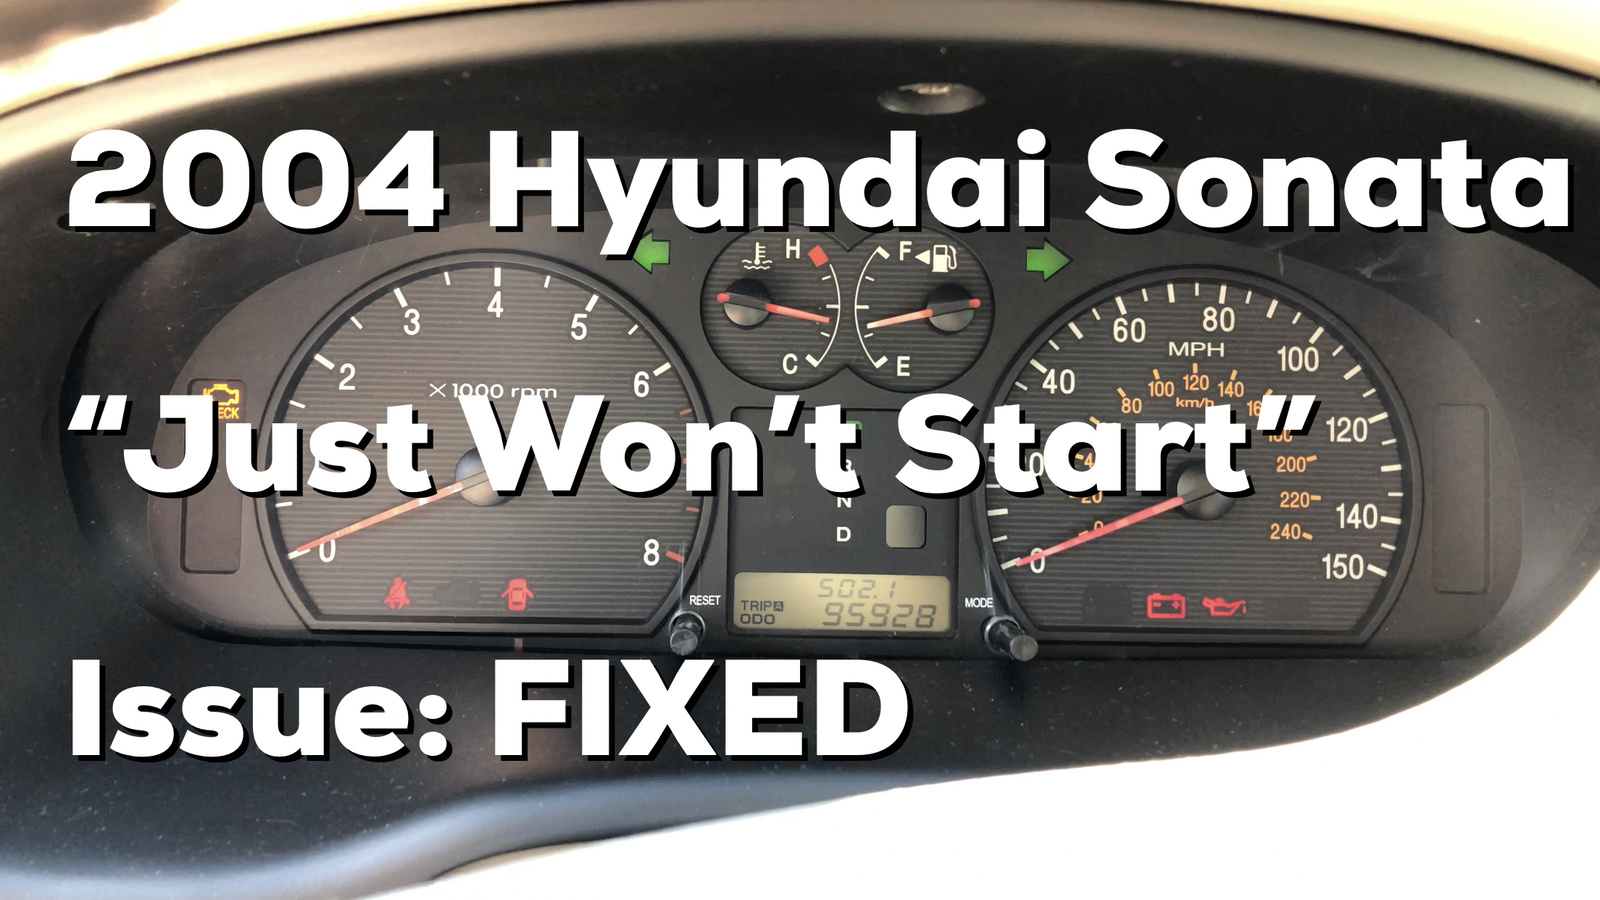 Hyundai Sonata Questions Car Wont Do Anything When You Try To 2012 Accent Engine Diagram Intermittent Start Issue Https Youtube Muqrstexico If The Link Video Doesnt Work Search For User Nperspective On And